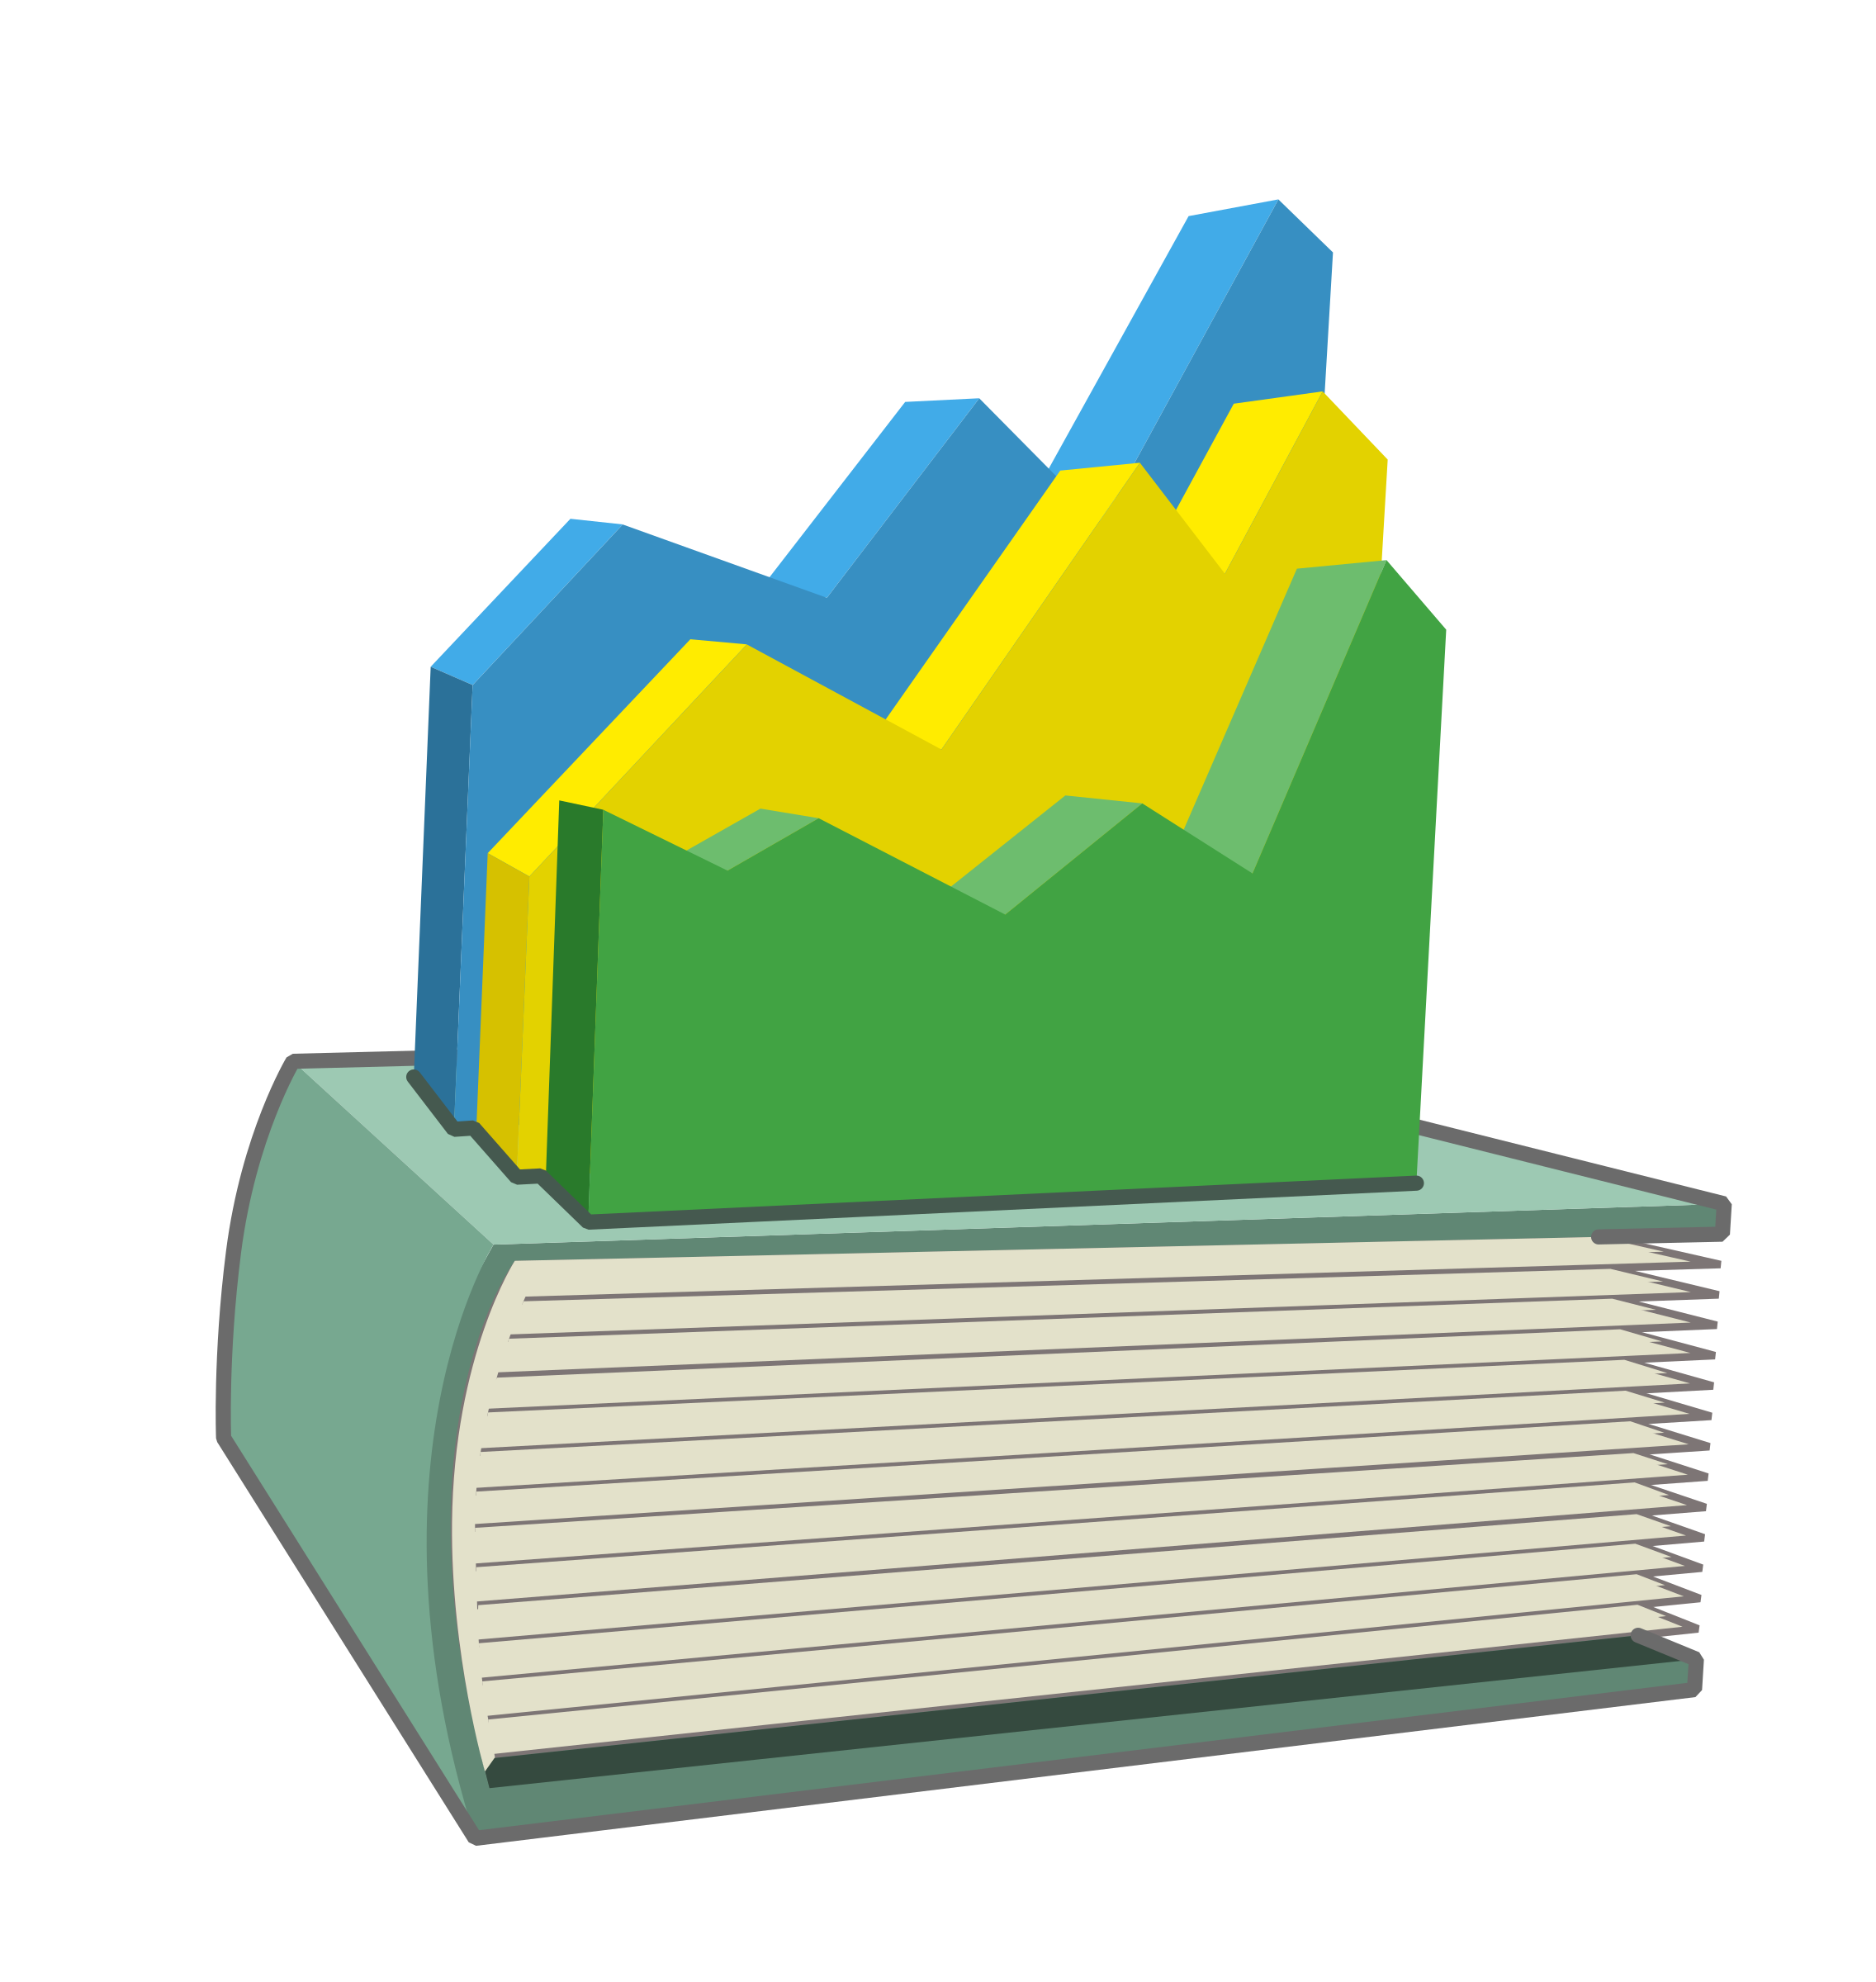 Statistical big image png. Yearbook clipart year book